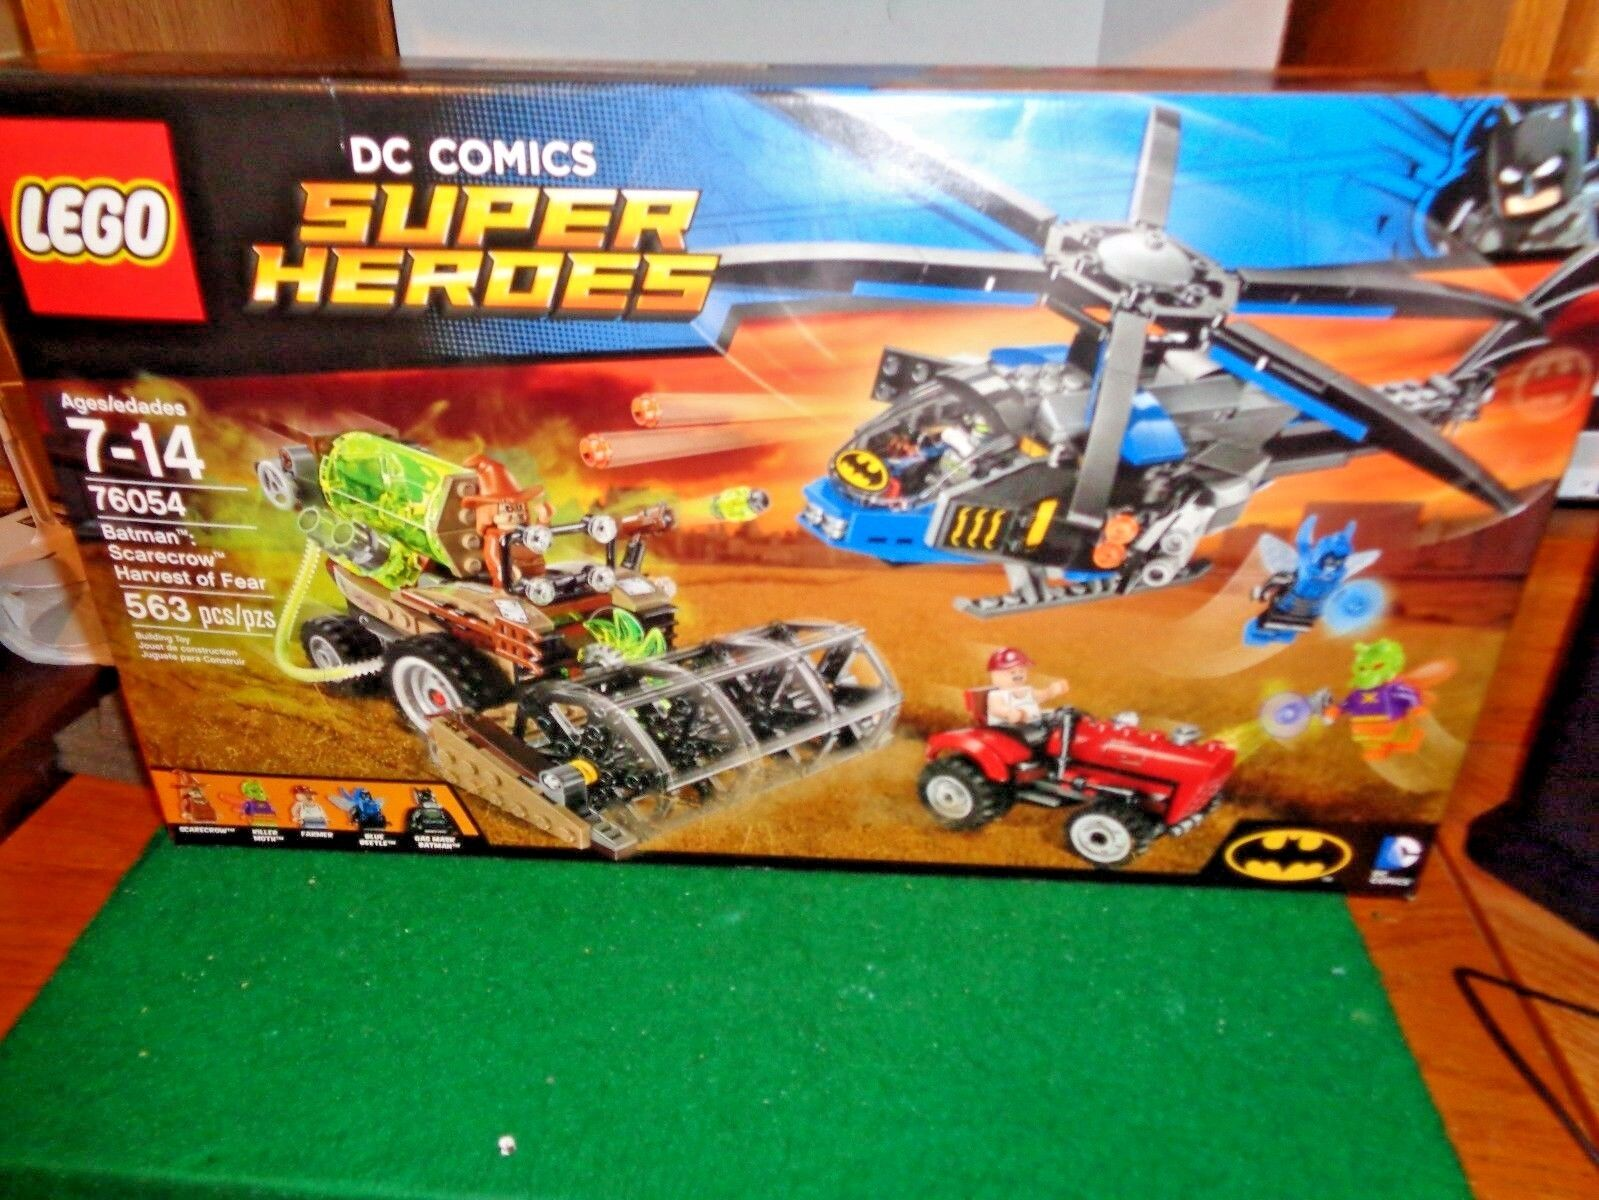 Lego DC Comics Super Heroes Batman Scarecrow Harvest  of Fear Set 76054 - 563